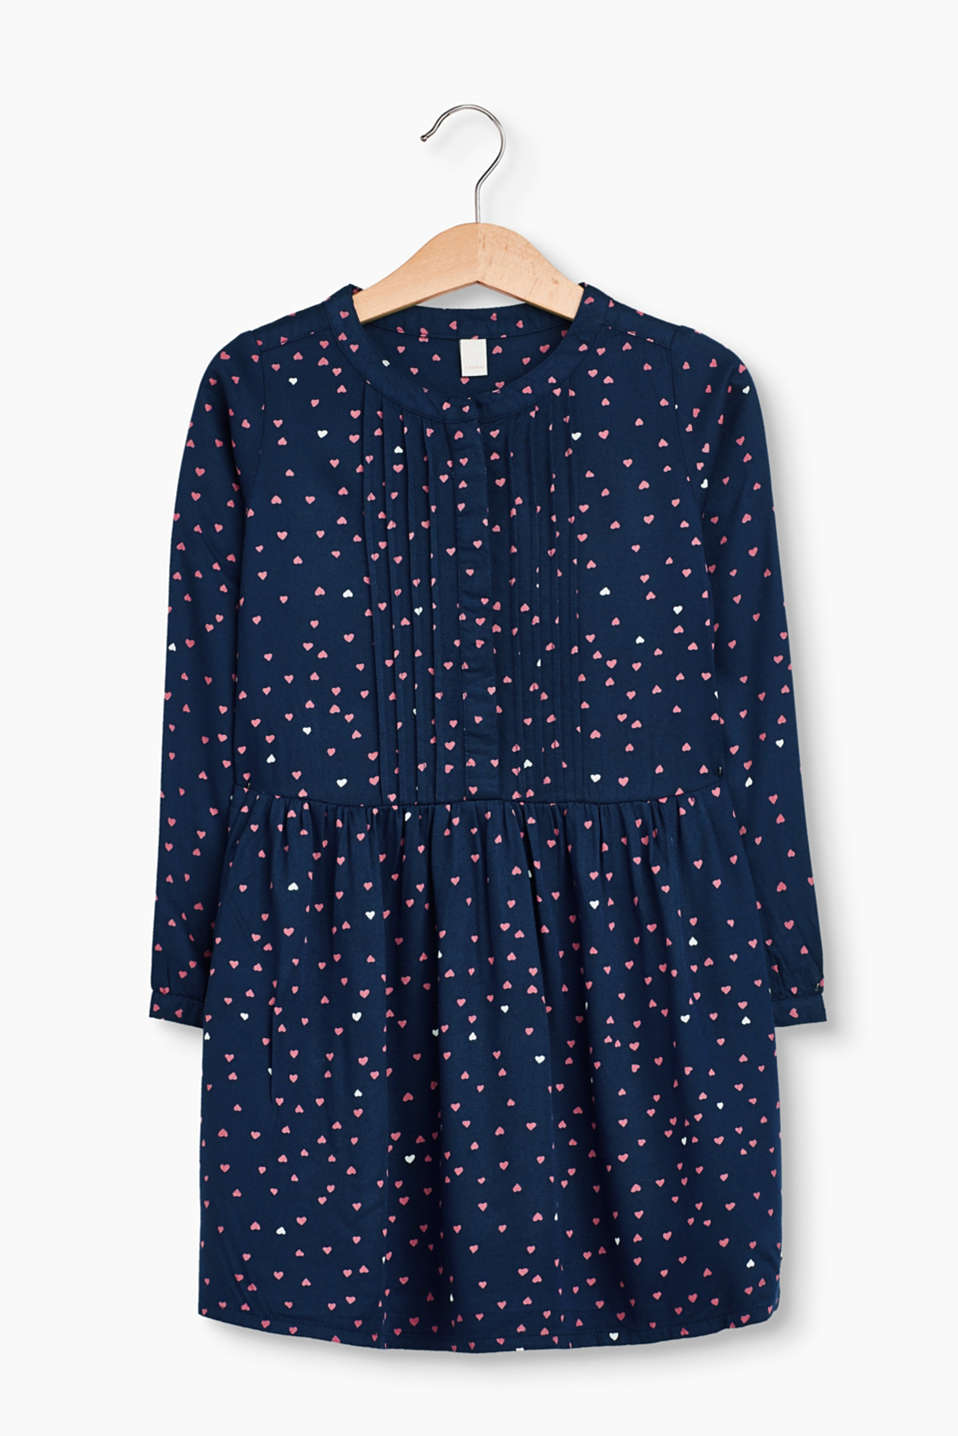 The all-over heart print on this softly flowing dress is a genuine, sweet highlight for little girls